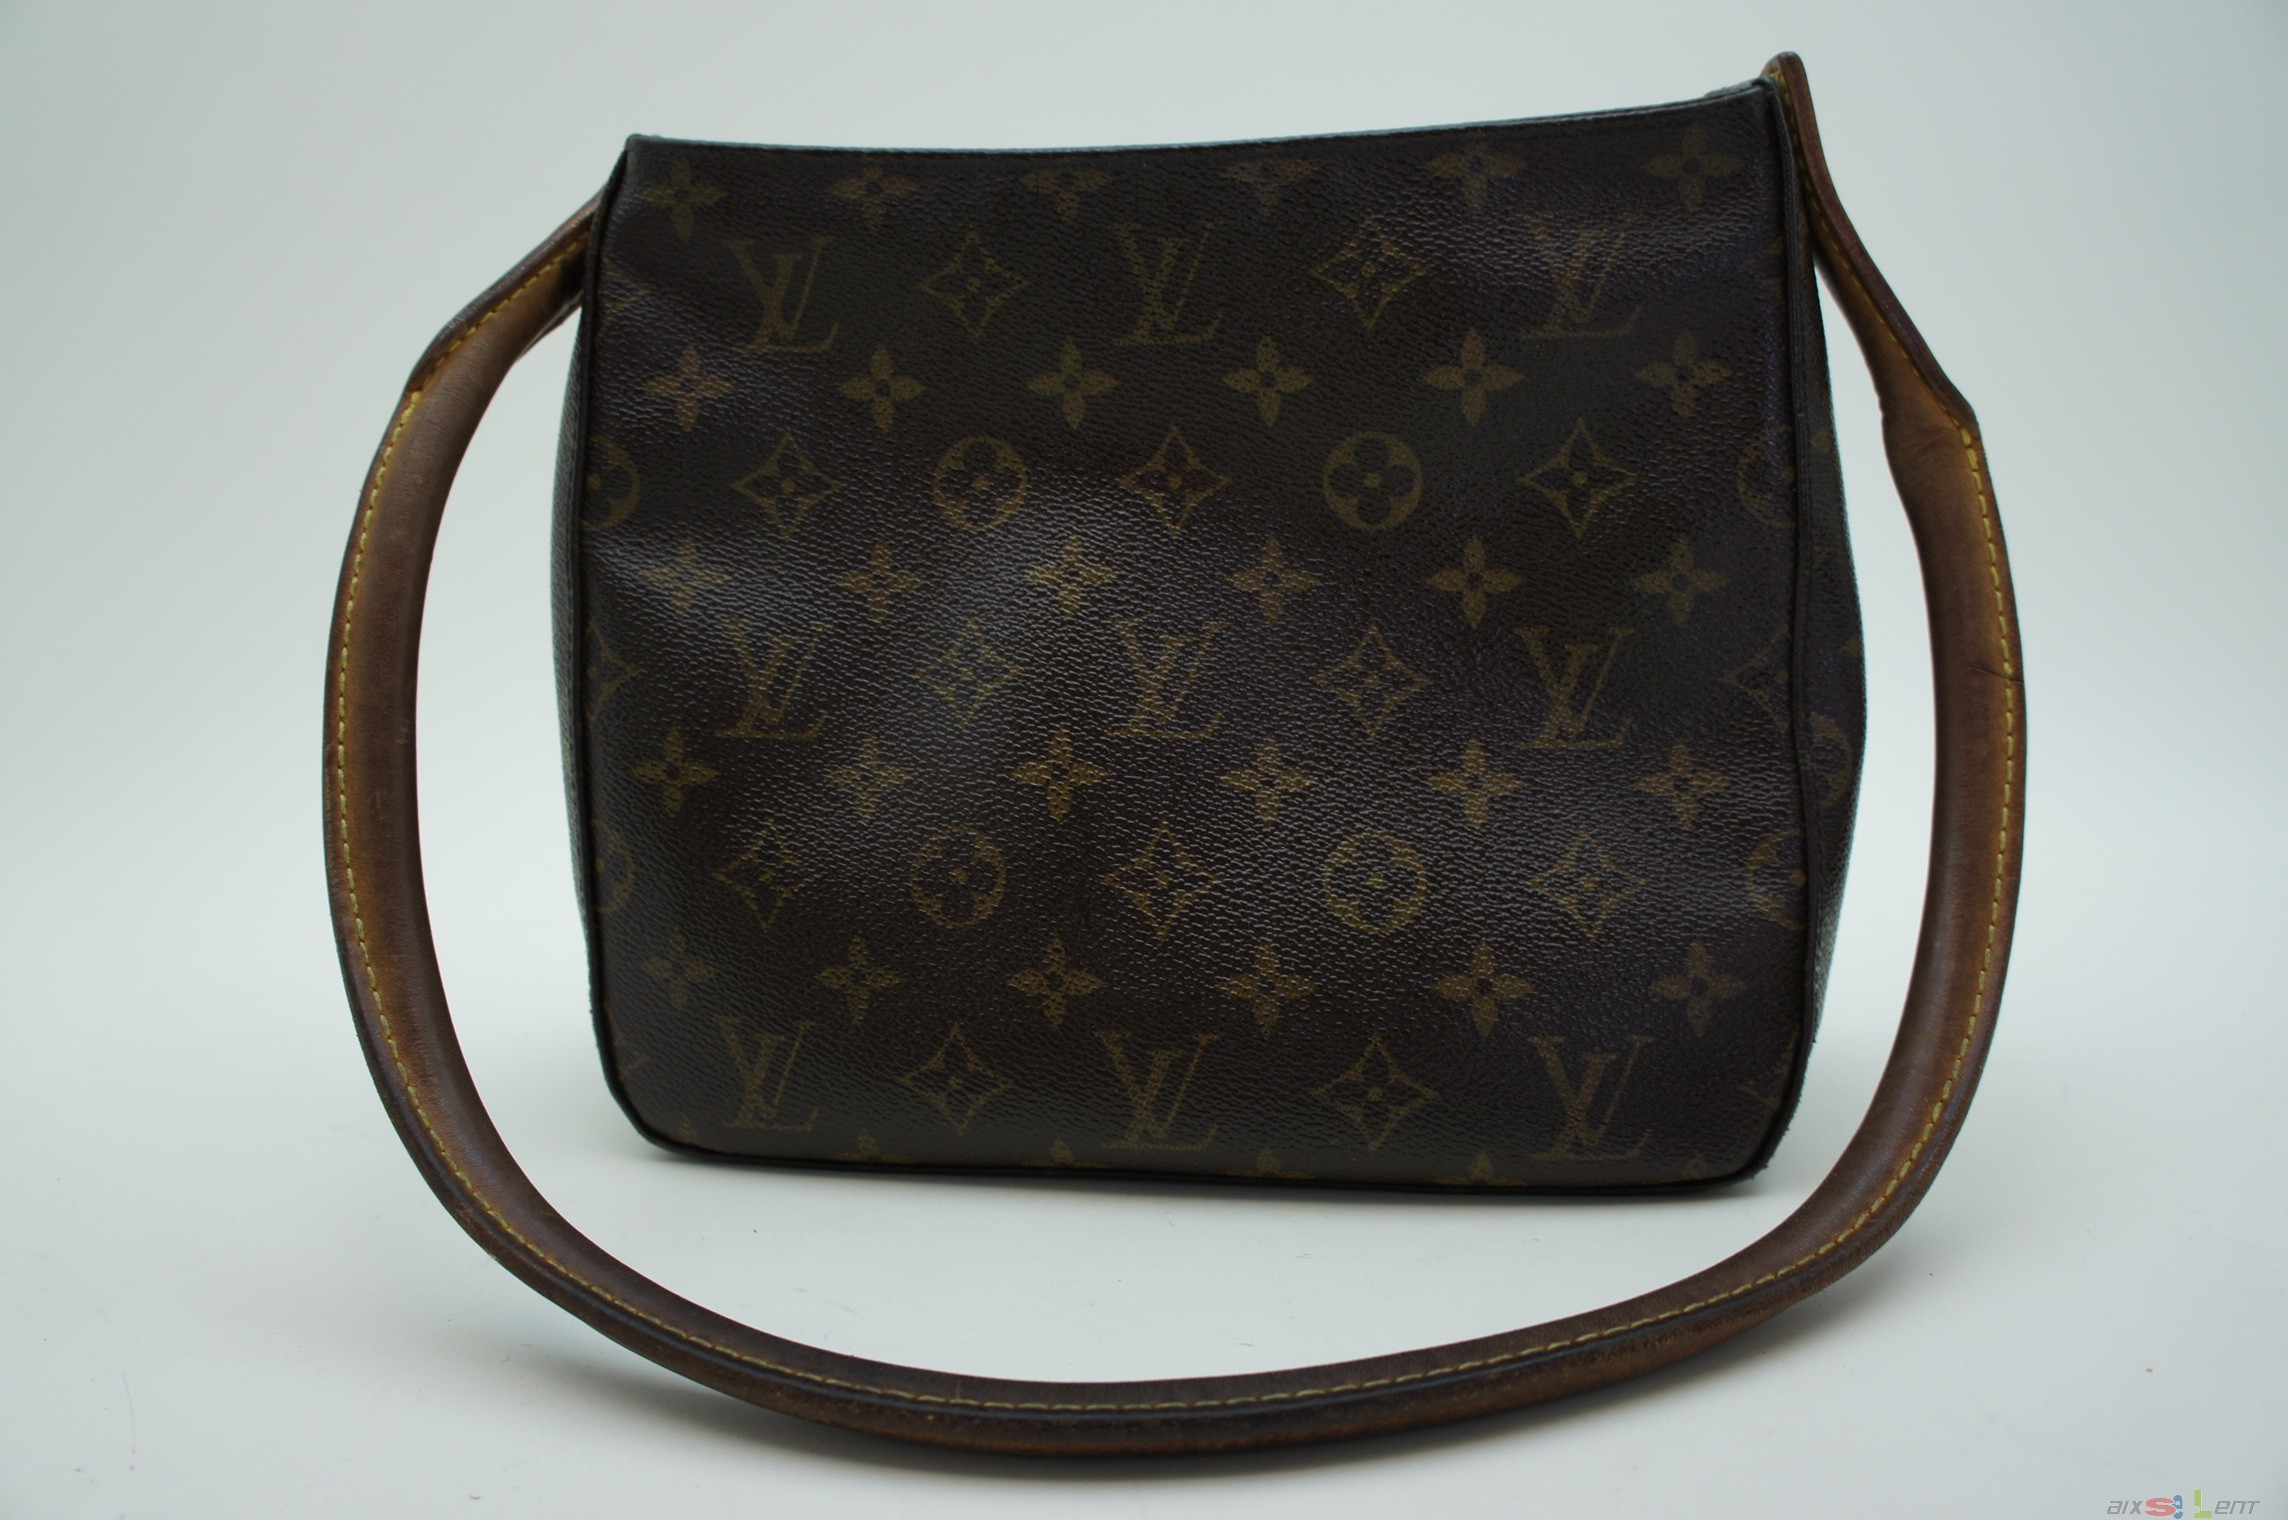 louis vuitton tasche handtasche braun original ebay. Black Bedroom Furniture Sets. Home Design Ideas